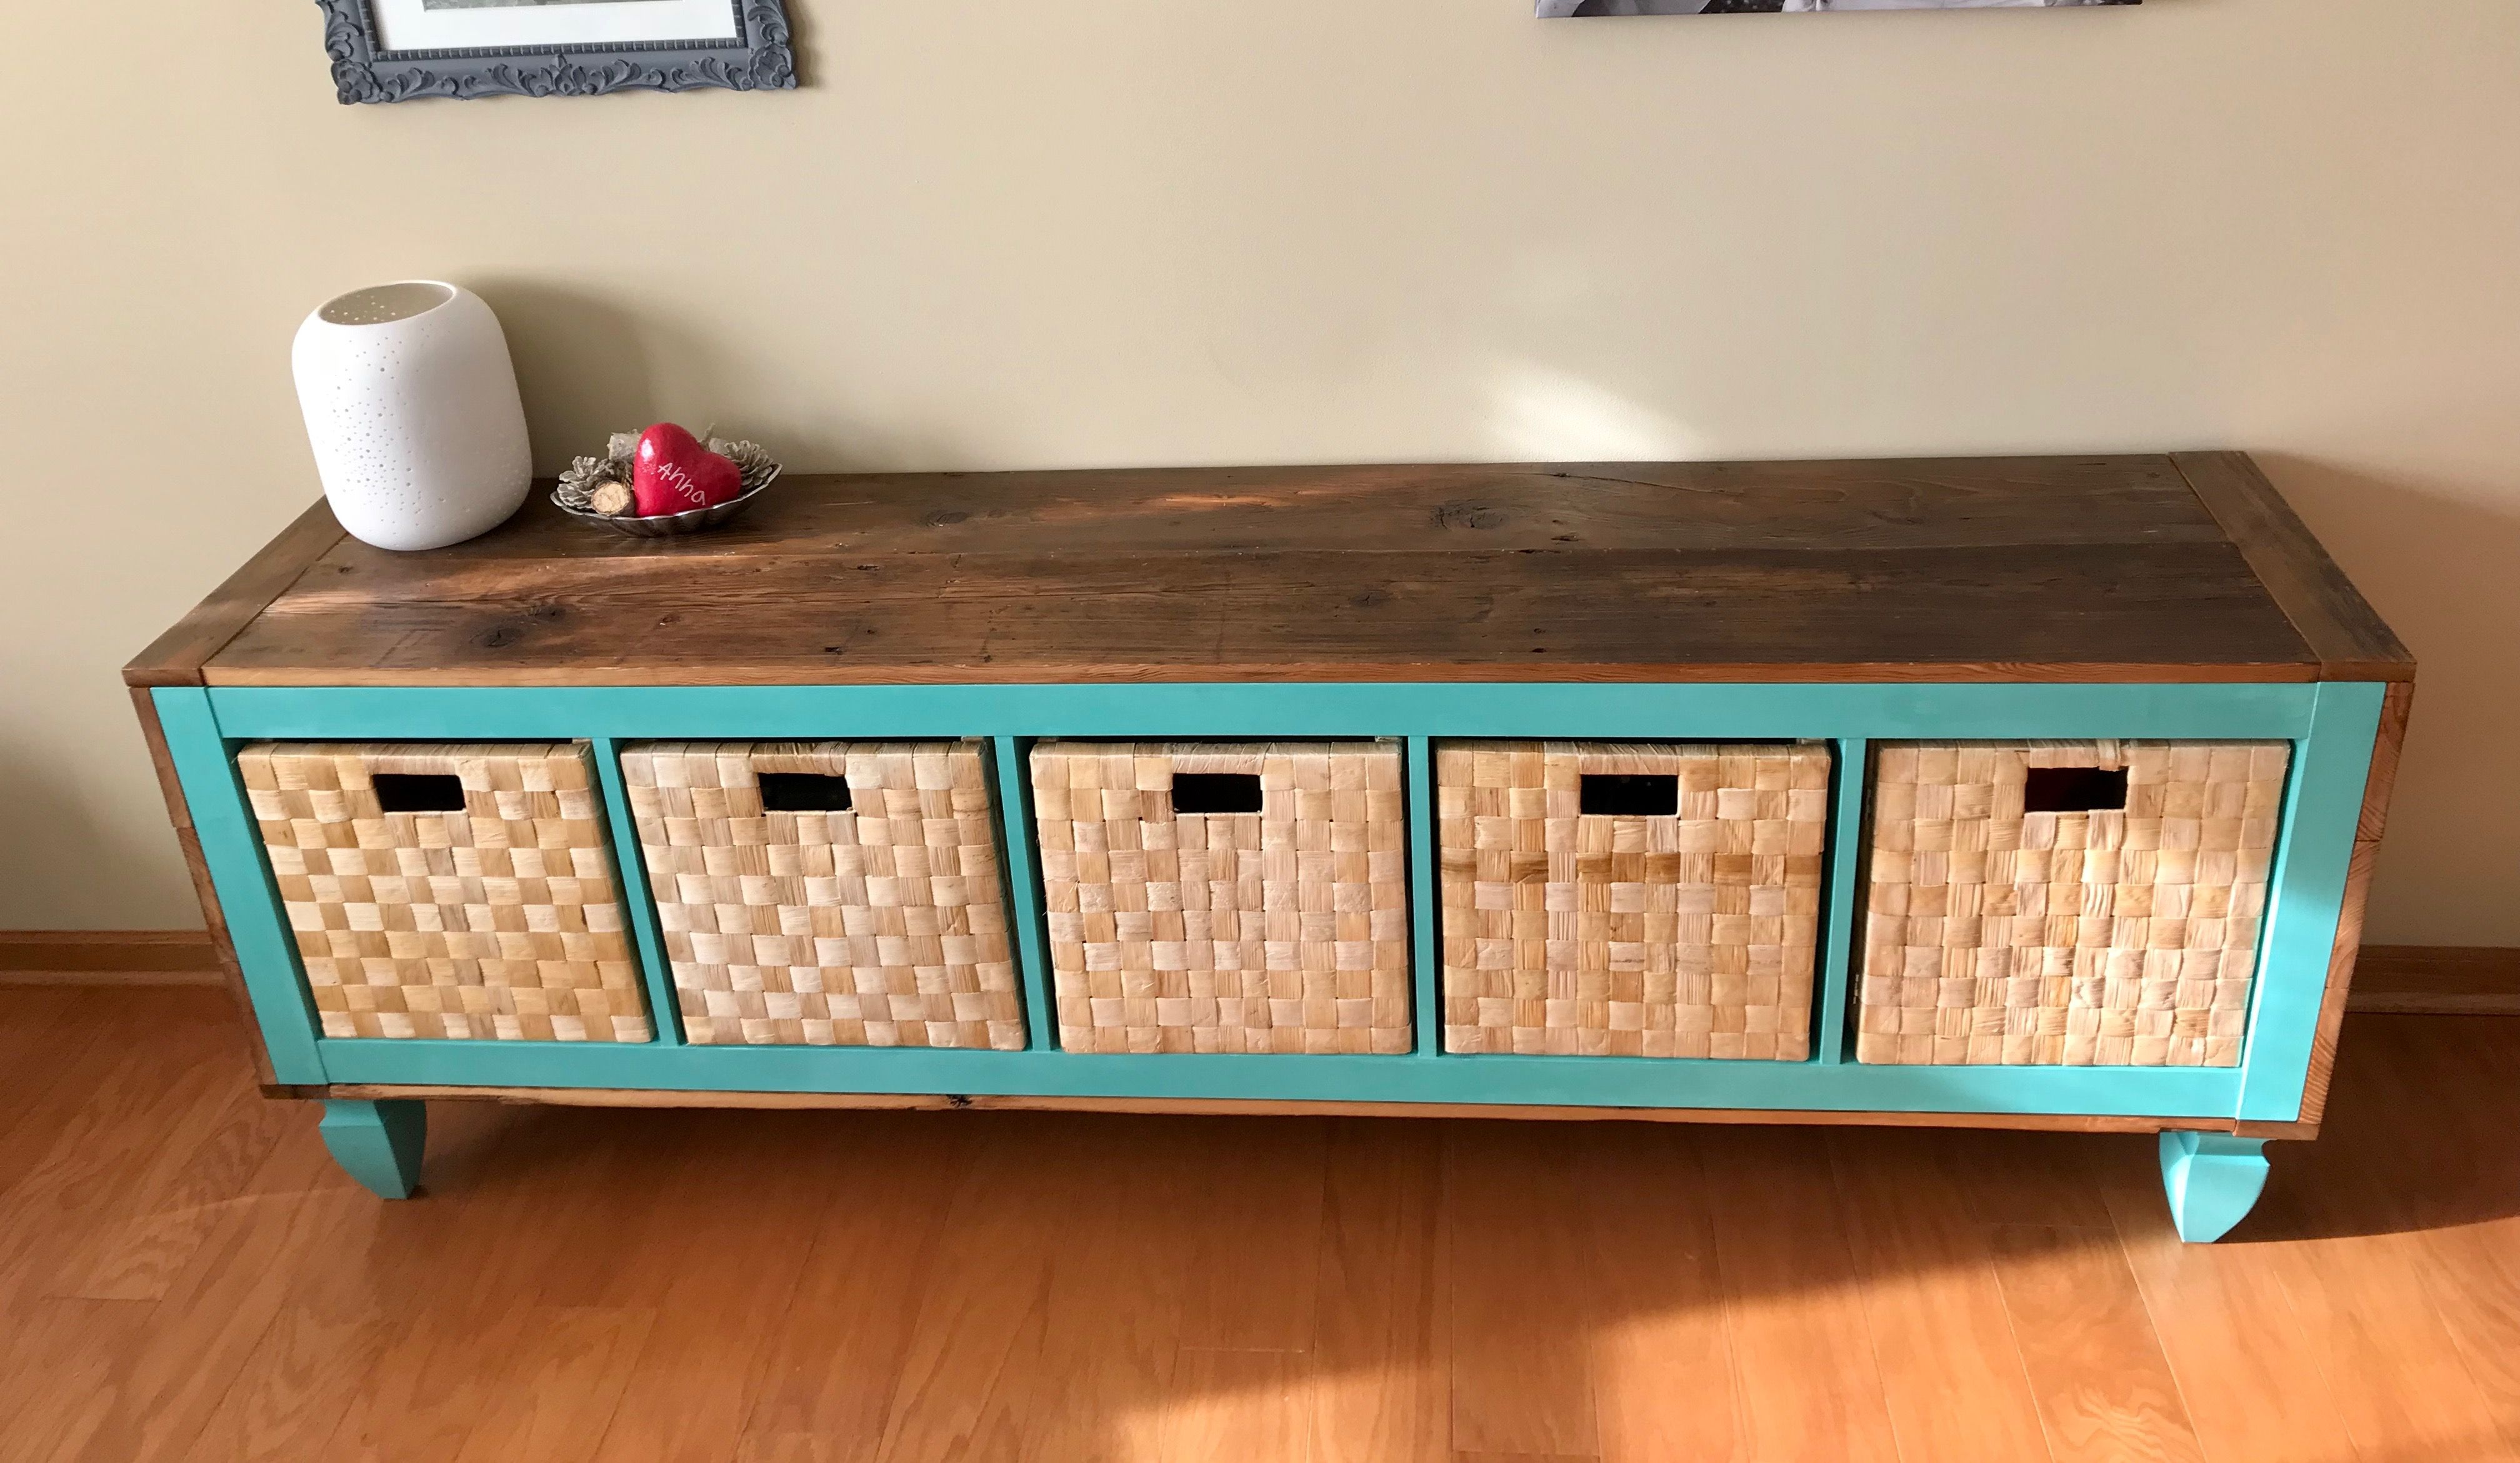 Ikea Expedit Chalk Paint Sideboard Reclaimed Wood Chalk Paint Legs Fence Post Legs